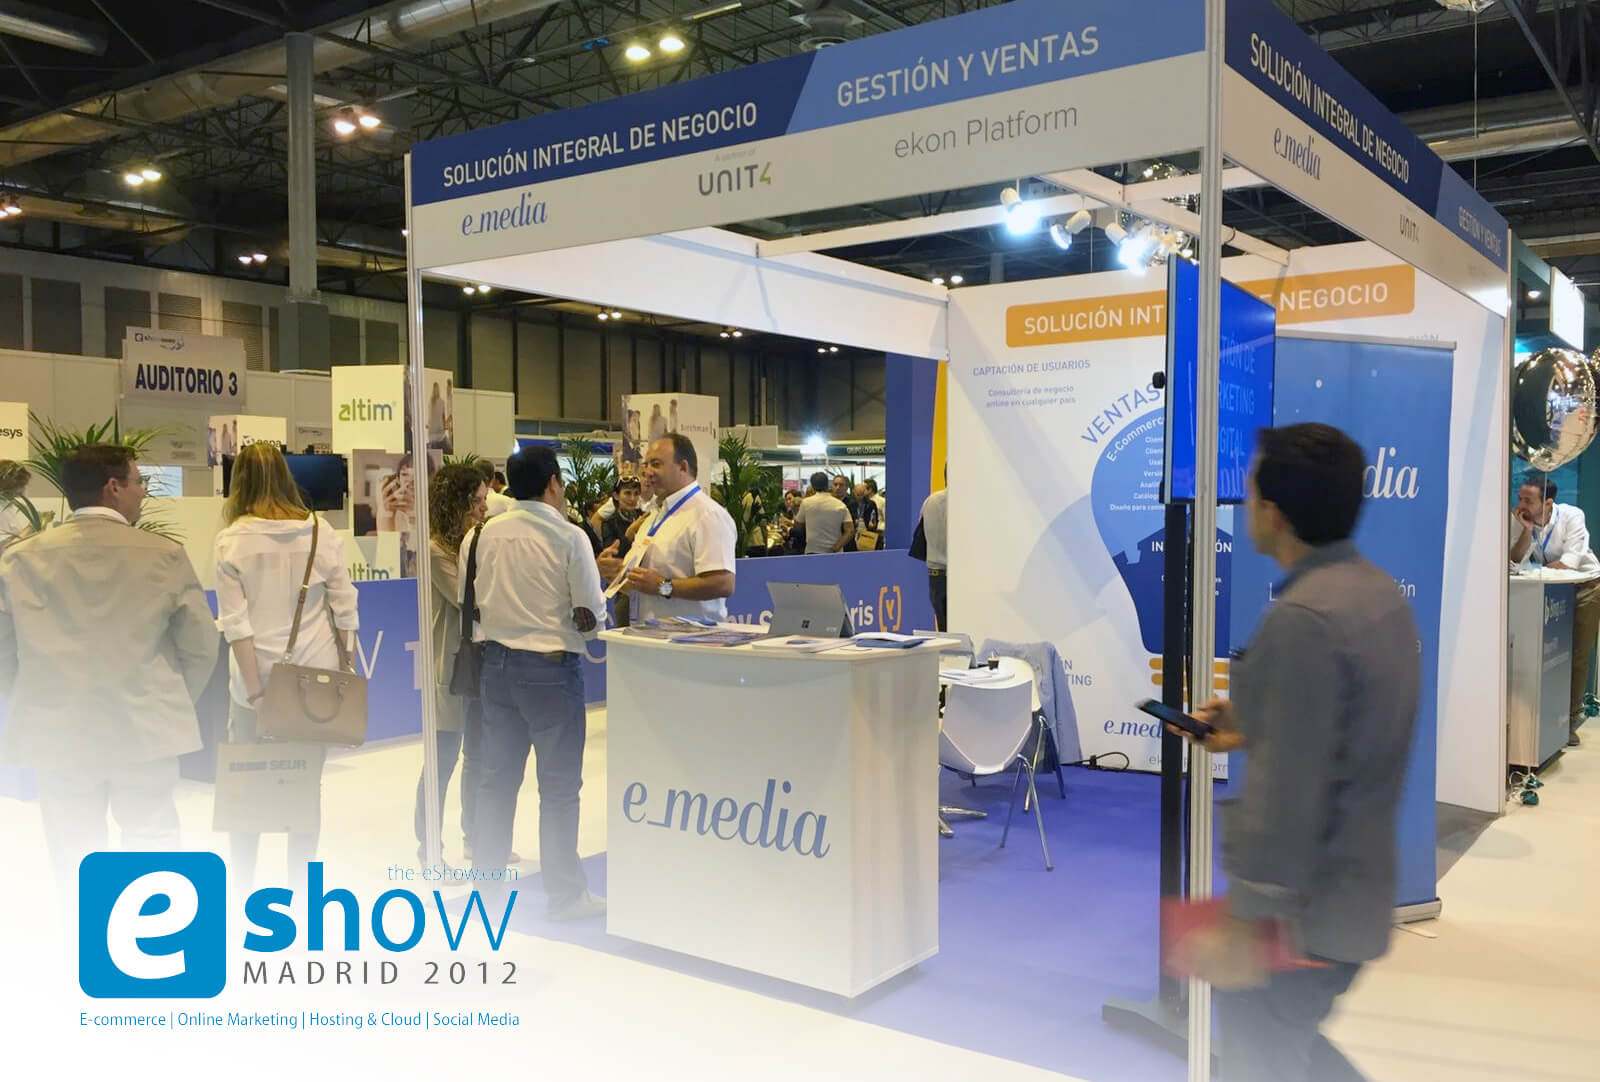 e_media en eShow Madrid 2016